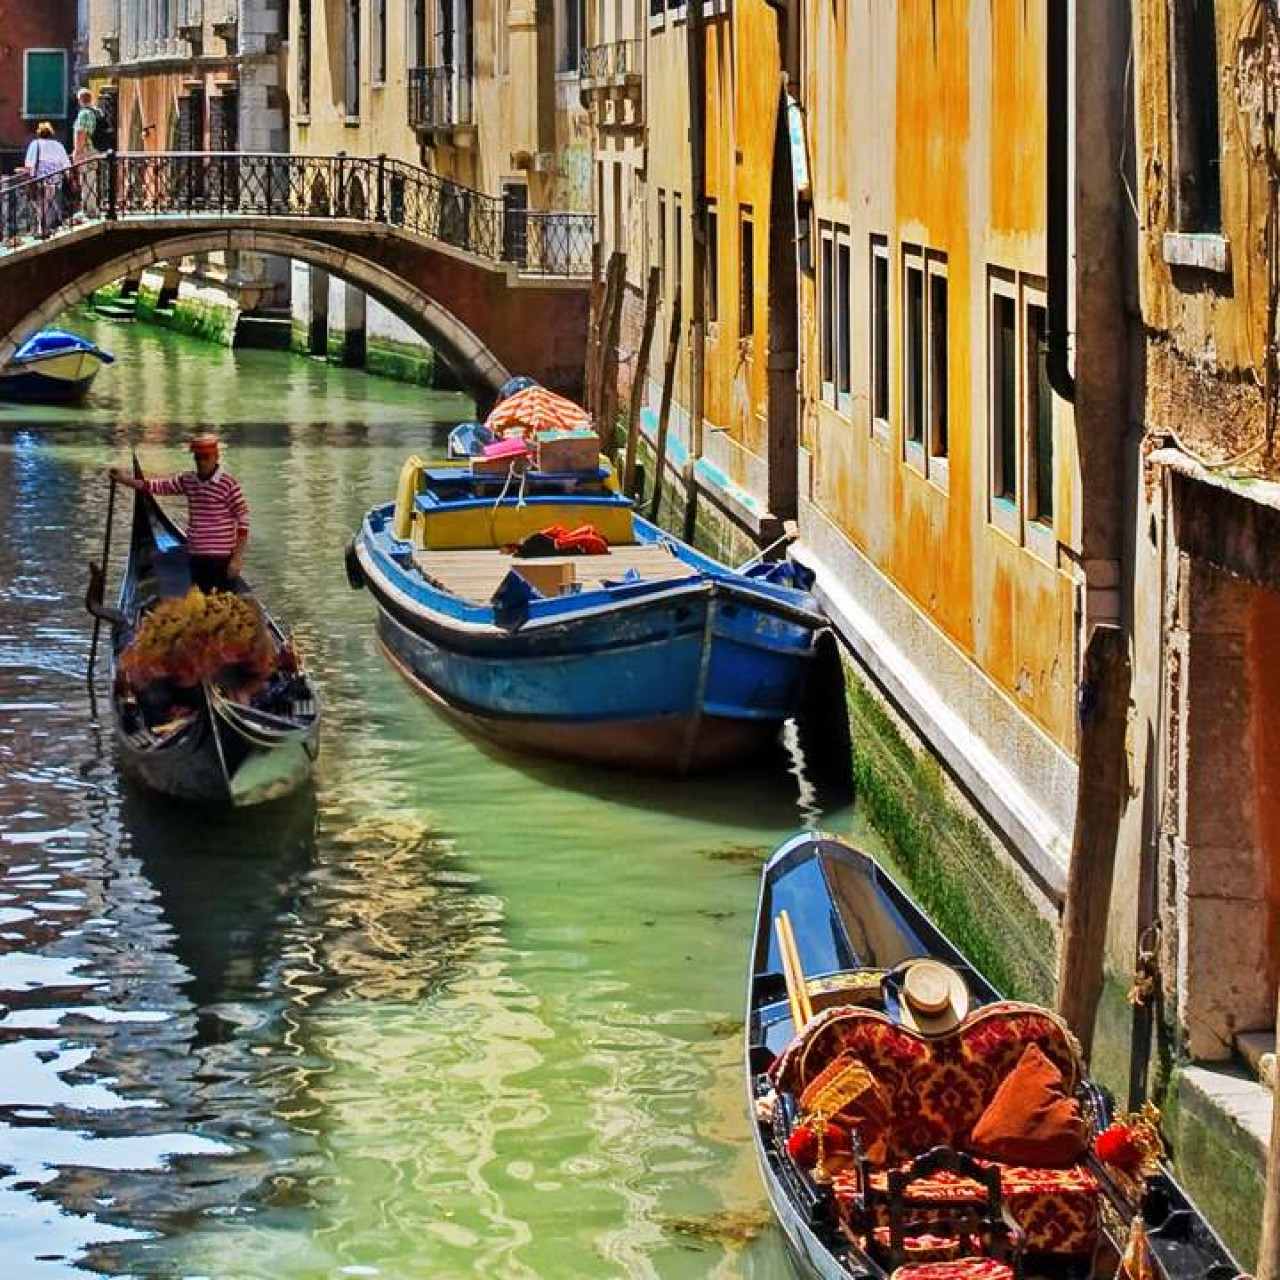 The good, the bad and the ugly sides of Venice: how to get the best